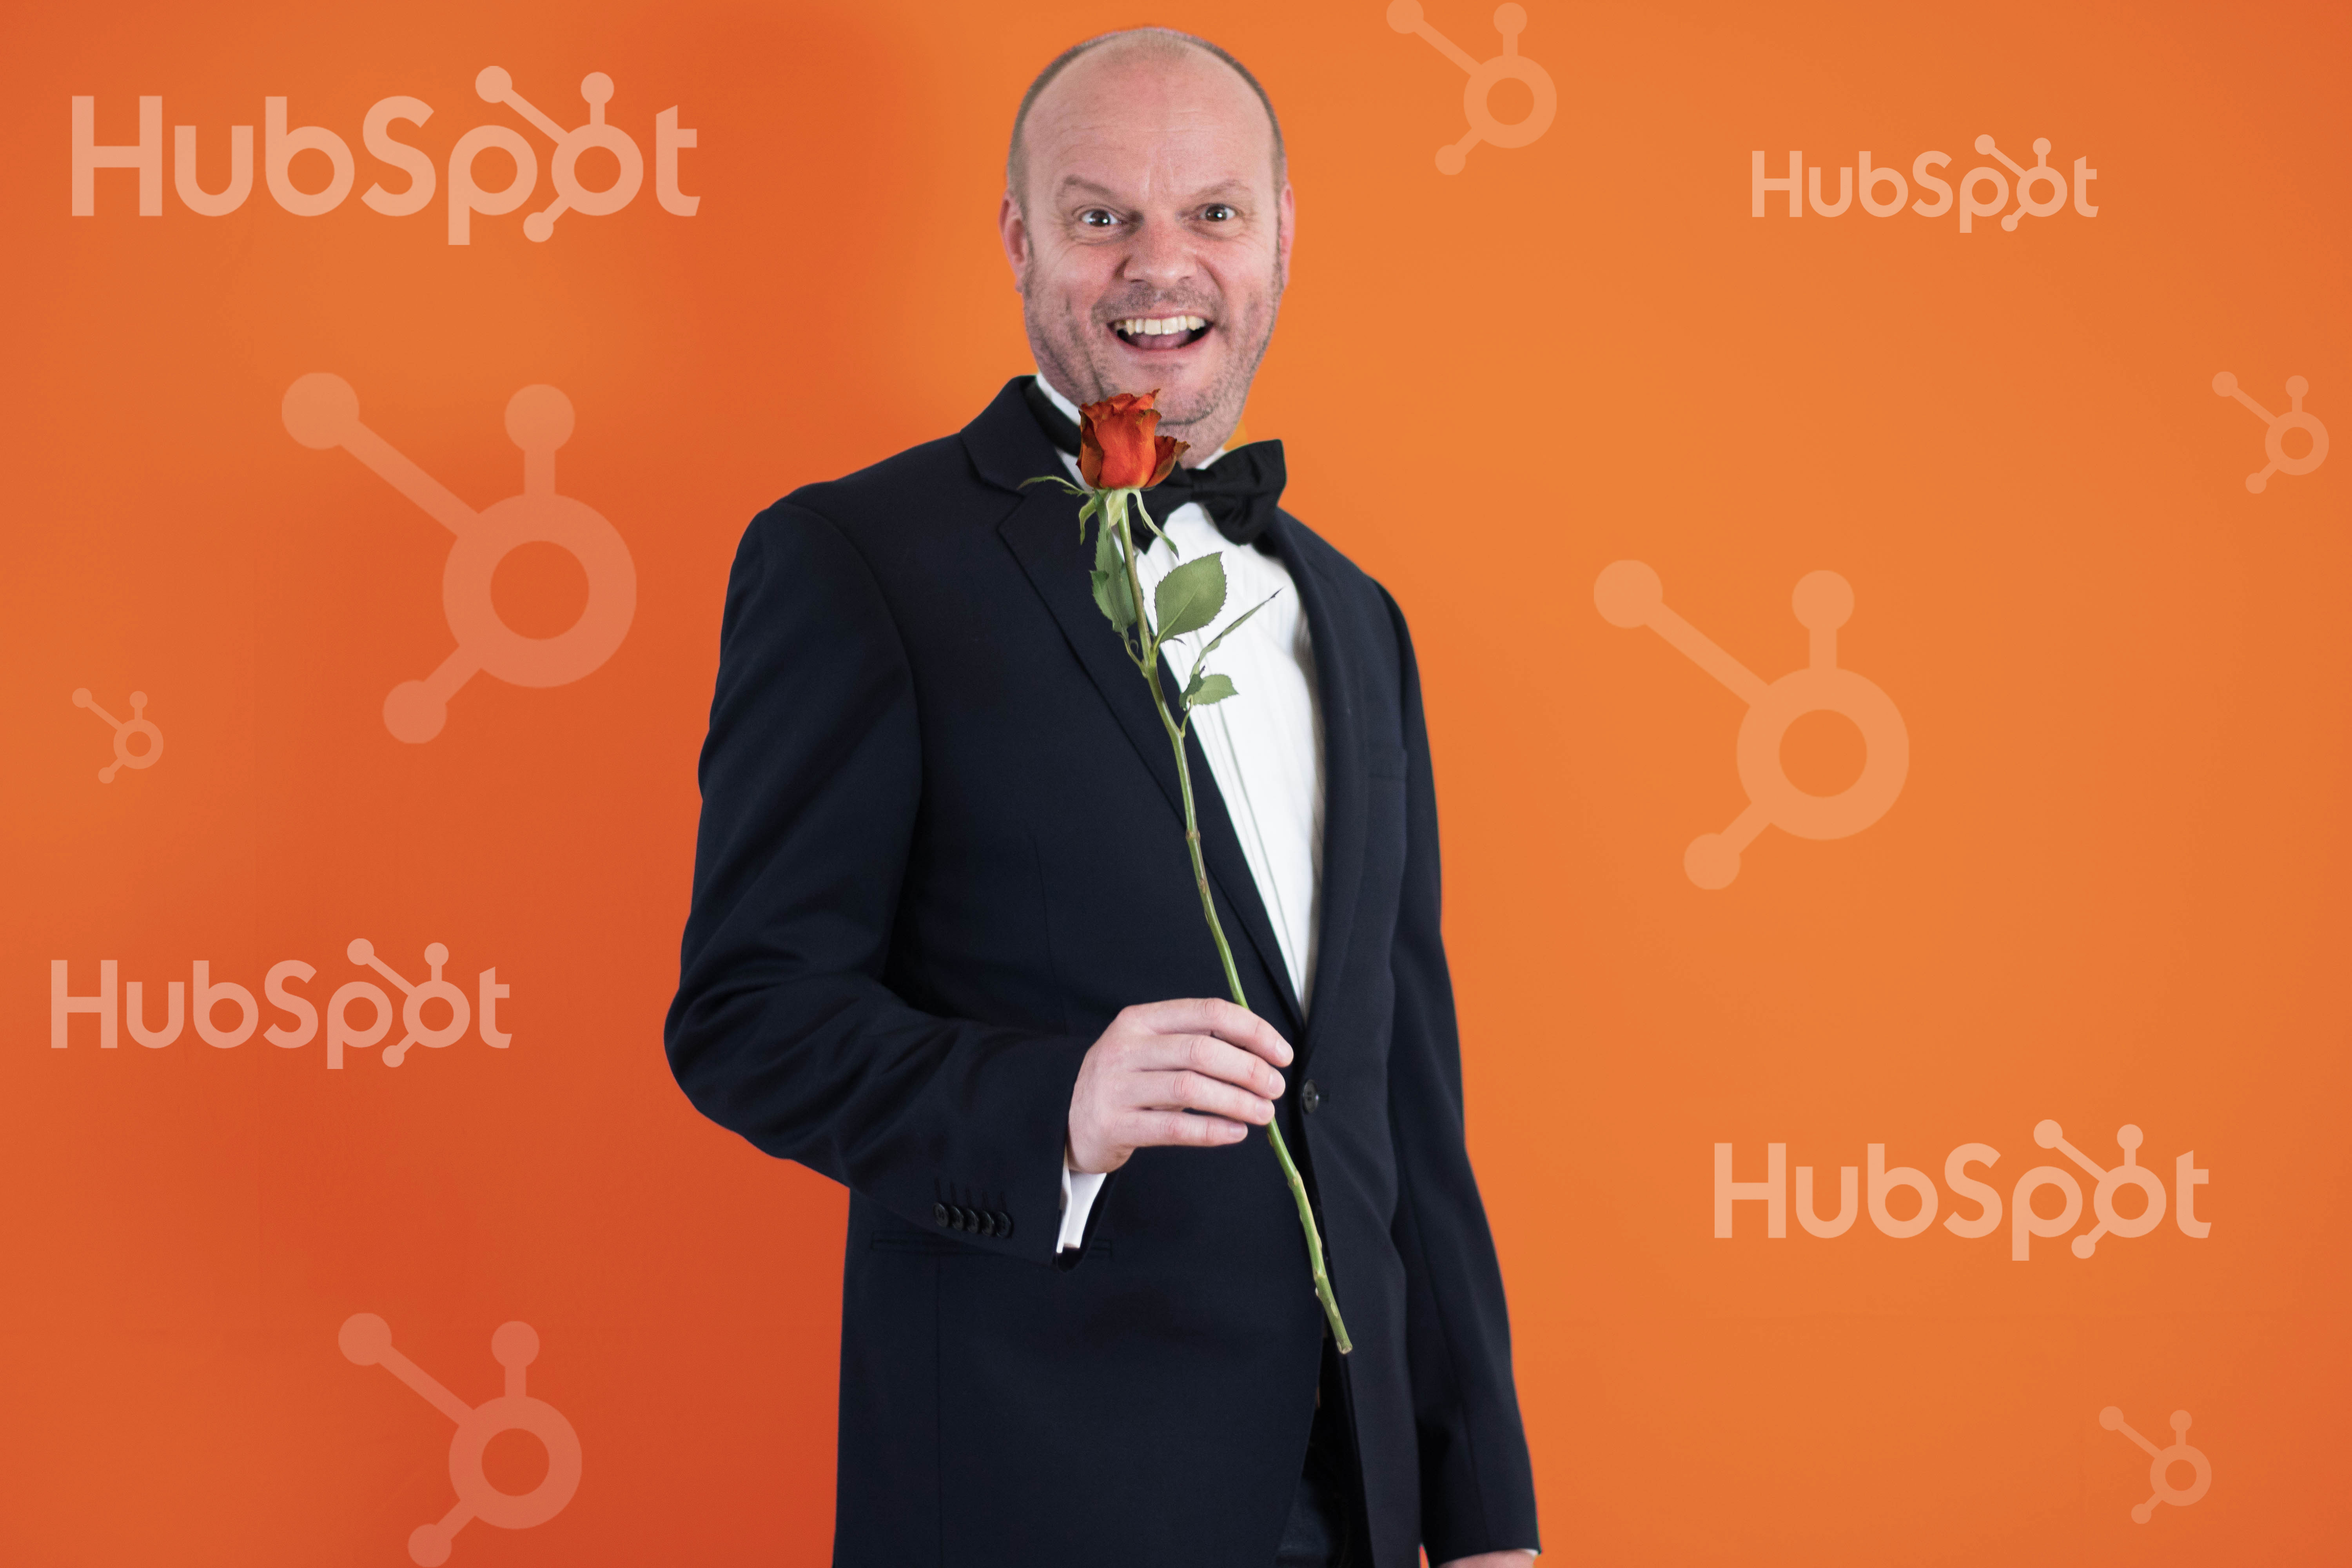 How To Convince Your Boss You Need HubSpot